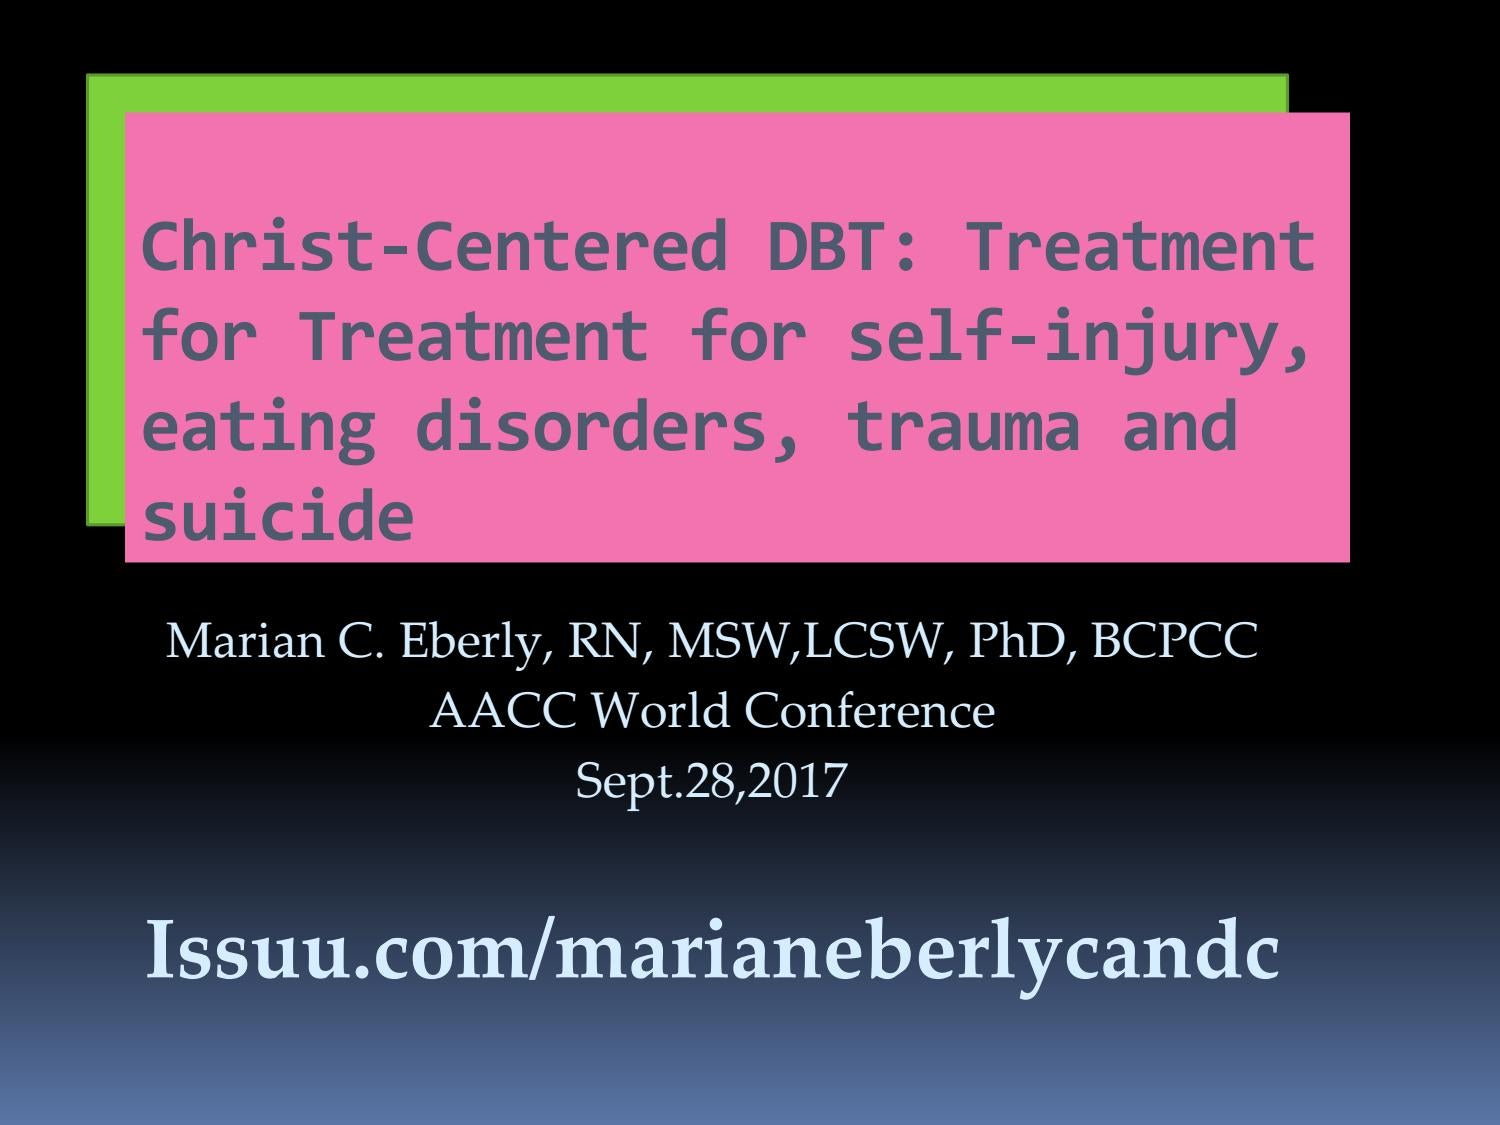 Dbt aacc 2017 wc dwnld by Marian Eberly Counseling - issuu